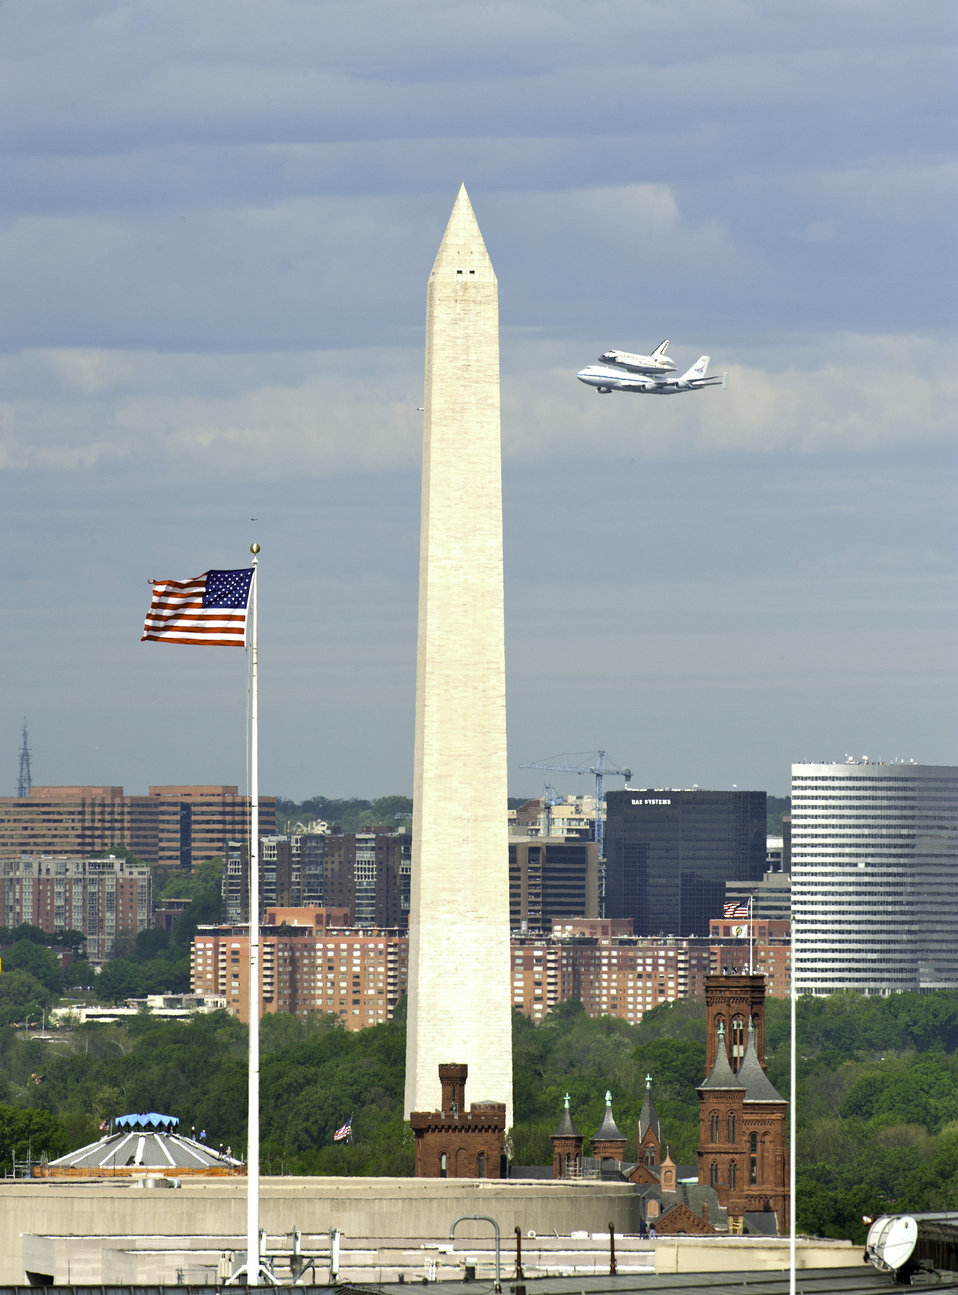 Shuttle Discovery Flying by the Washington Monument